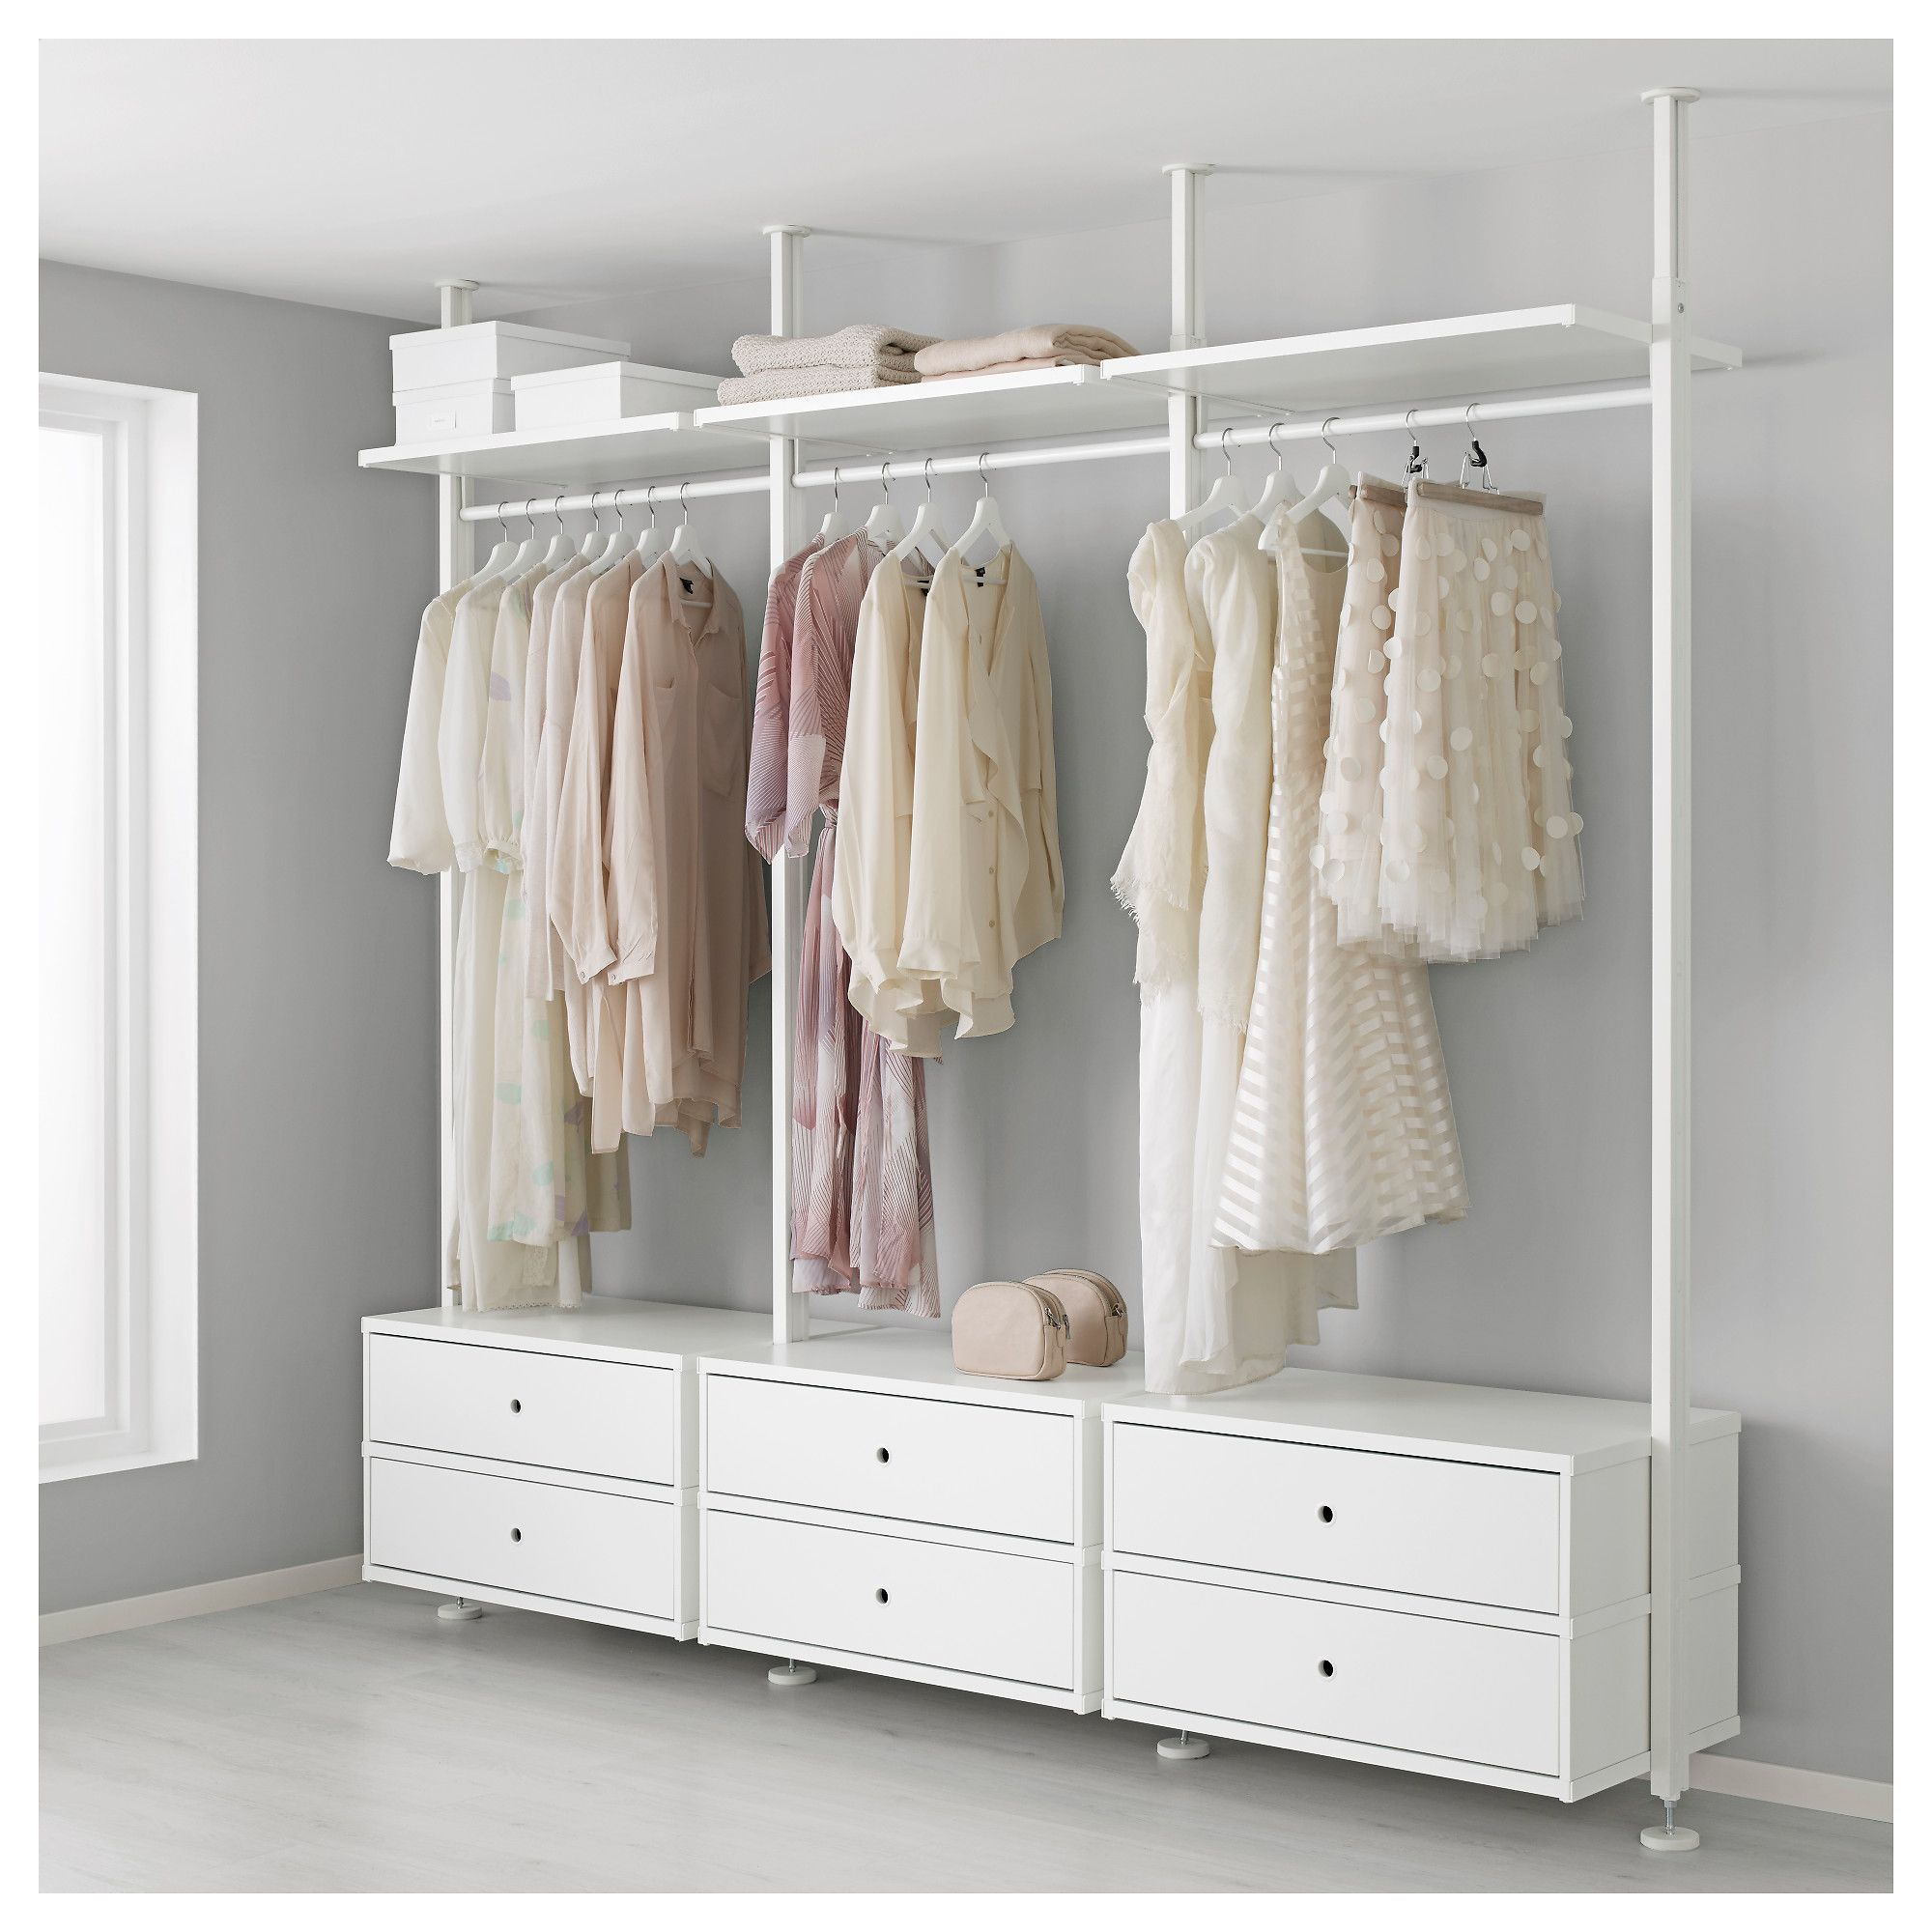 Elvarli 3 Sections White 101 3 4x20x87 1 4 137 3 4 Closet